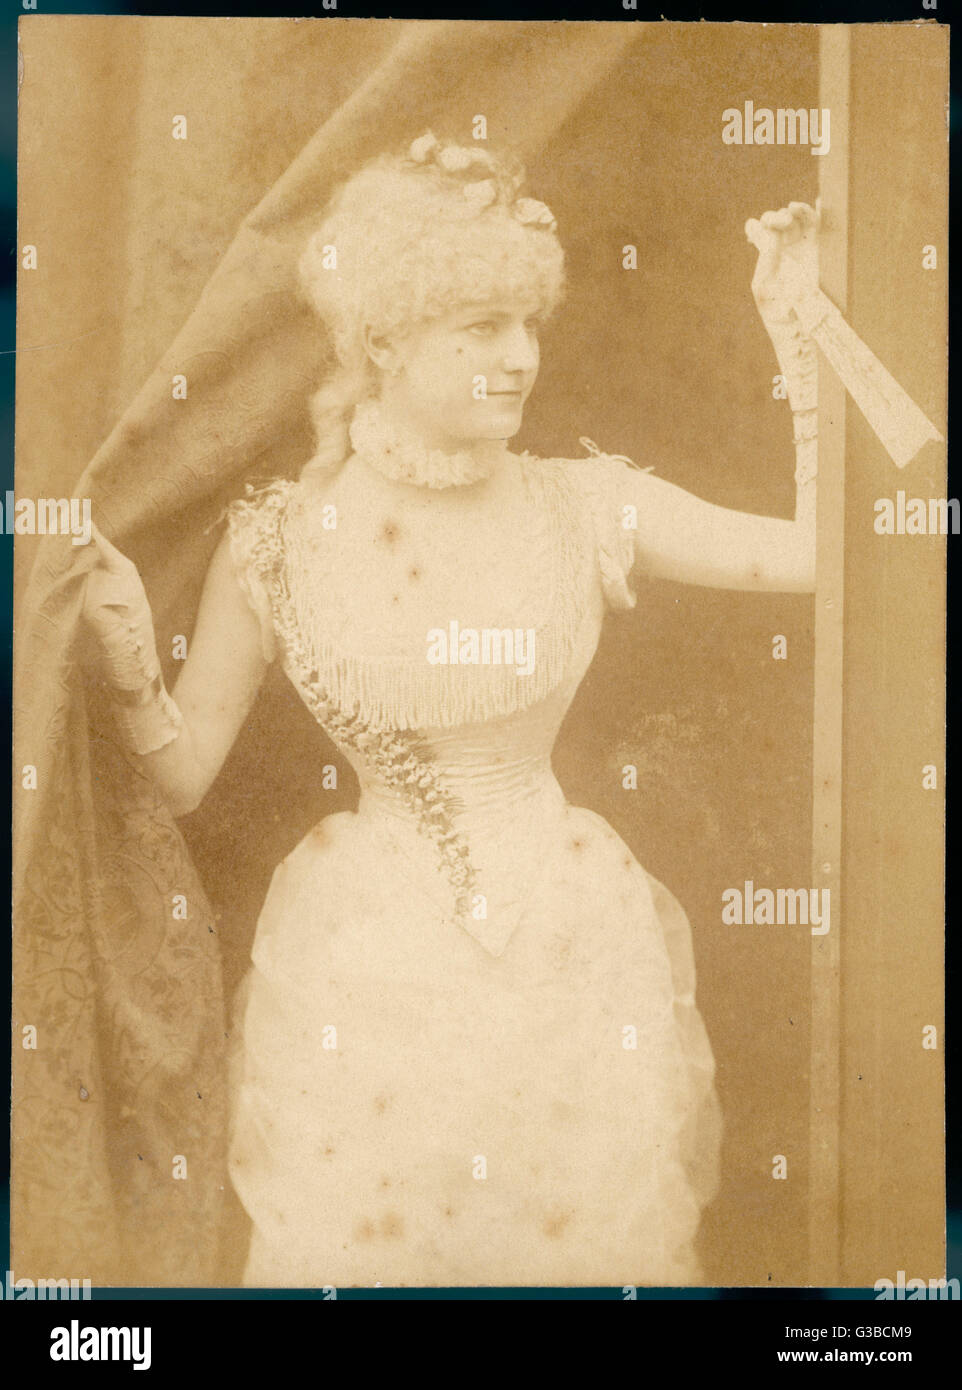 Young Victorian actress or music hall artiste.        Date: late 19th century - Stock Image